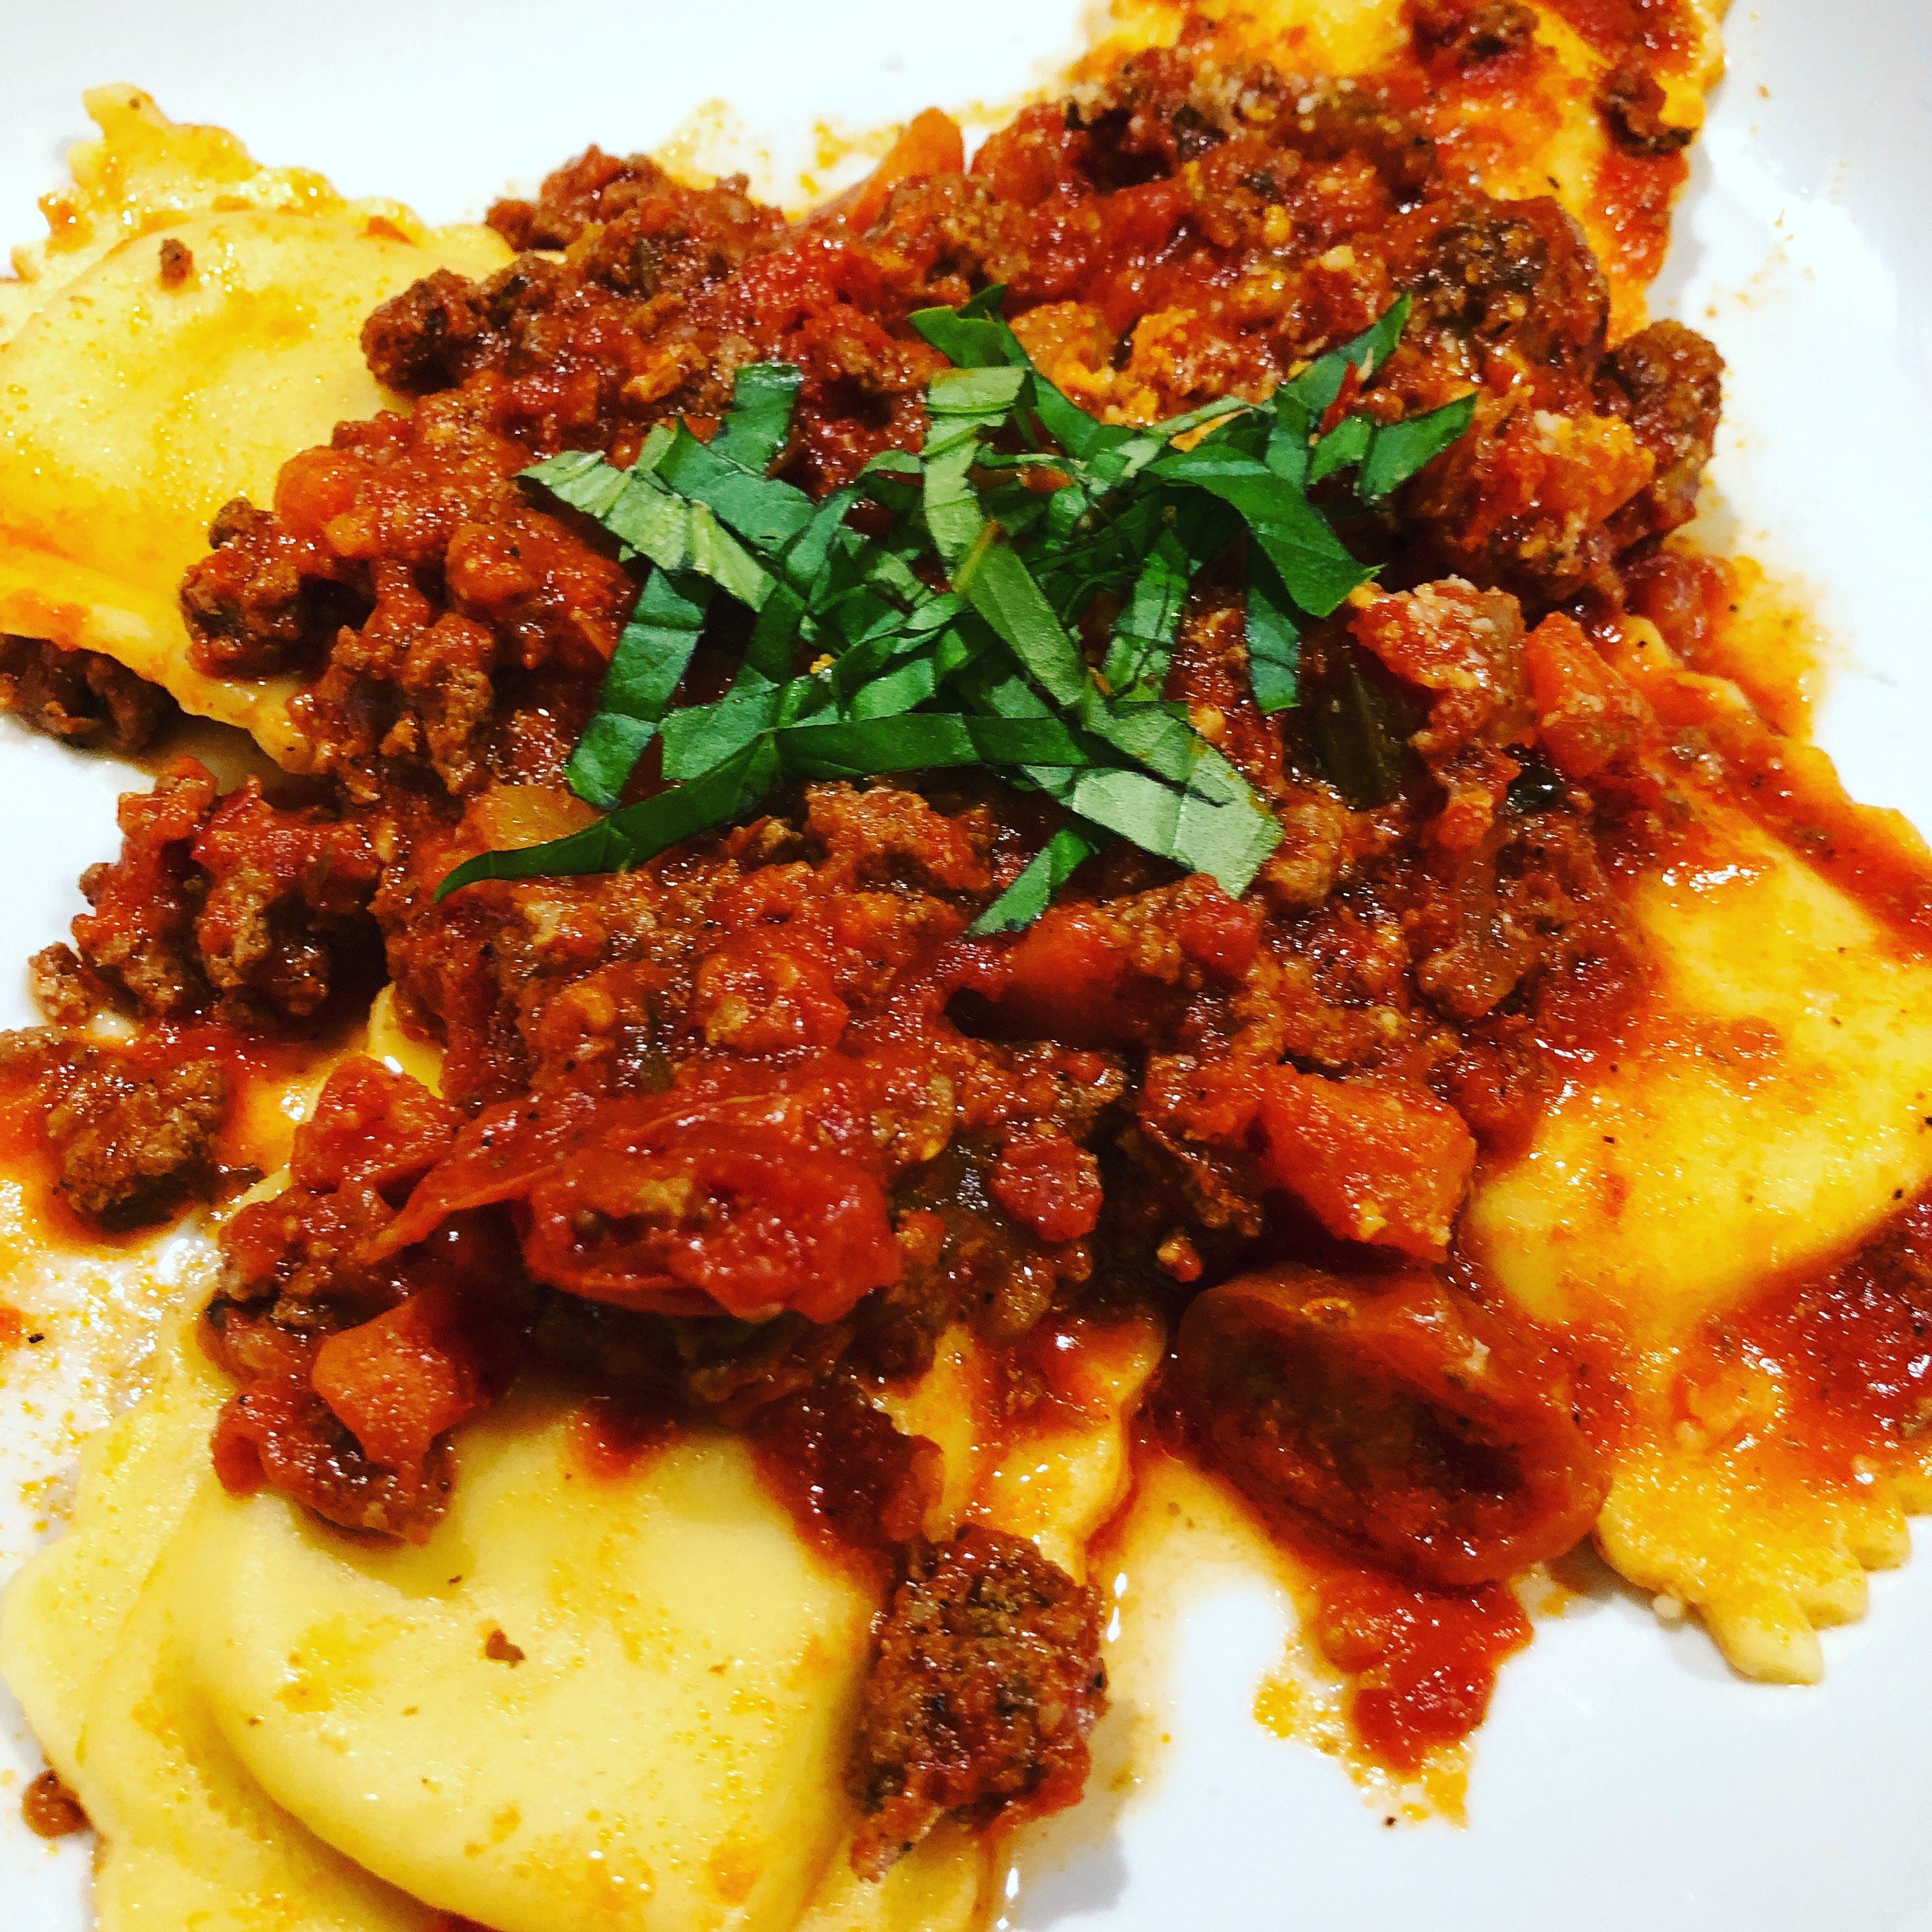 Ravioli with Bolognese